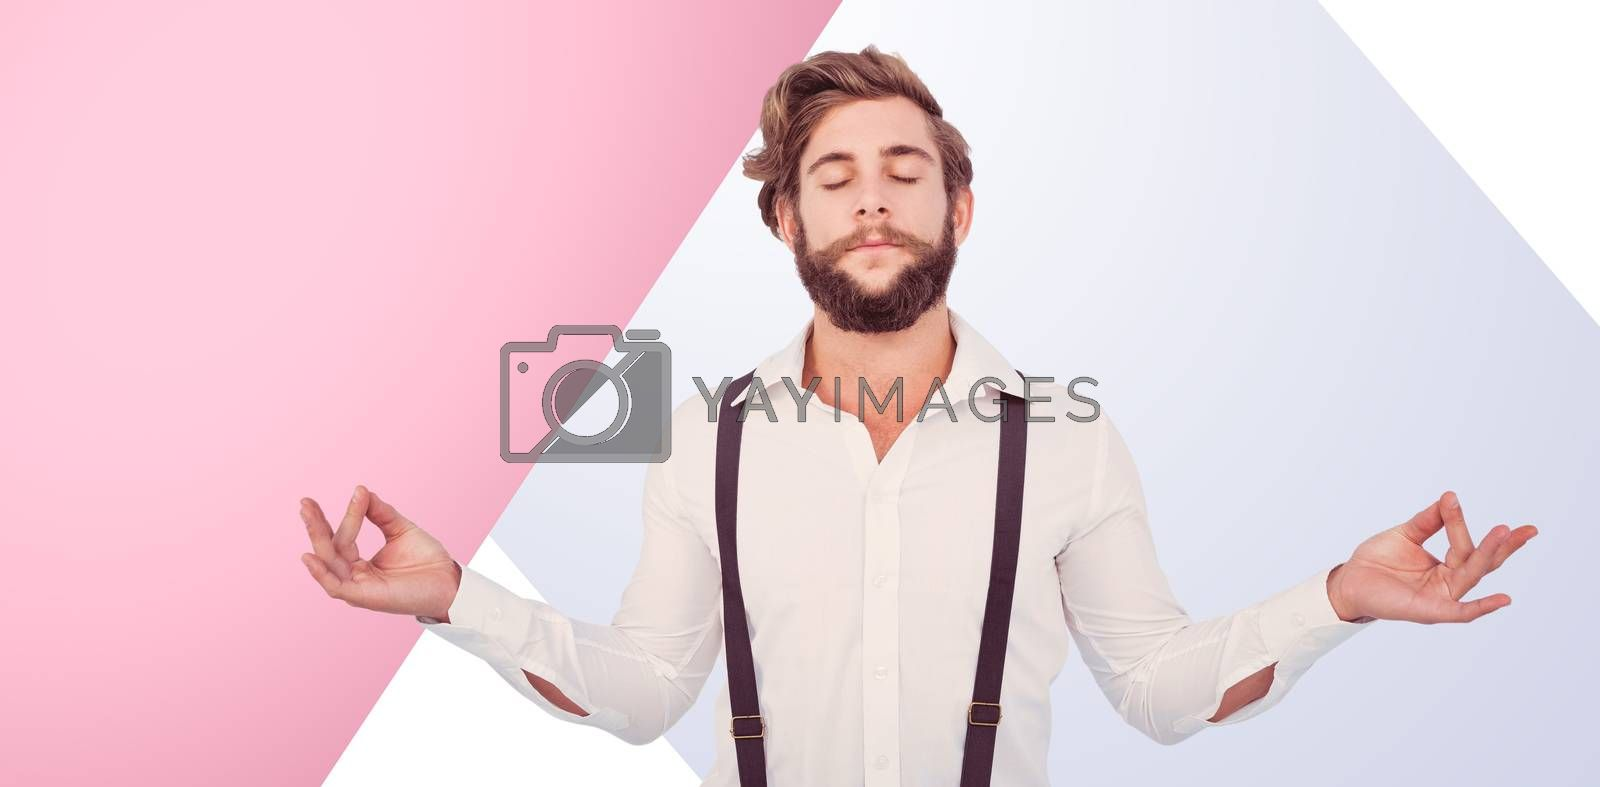 Hipster meditating arms outstretched against pink background